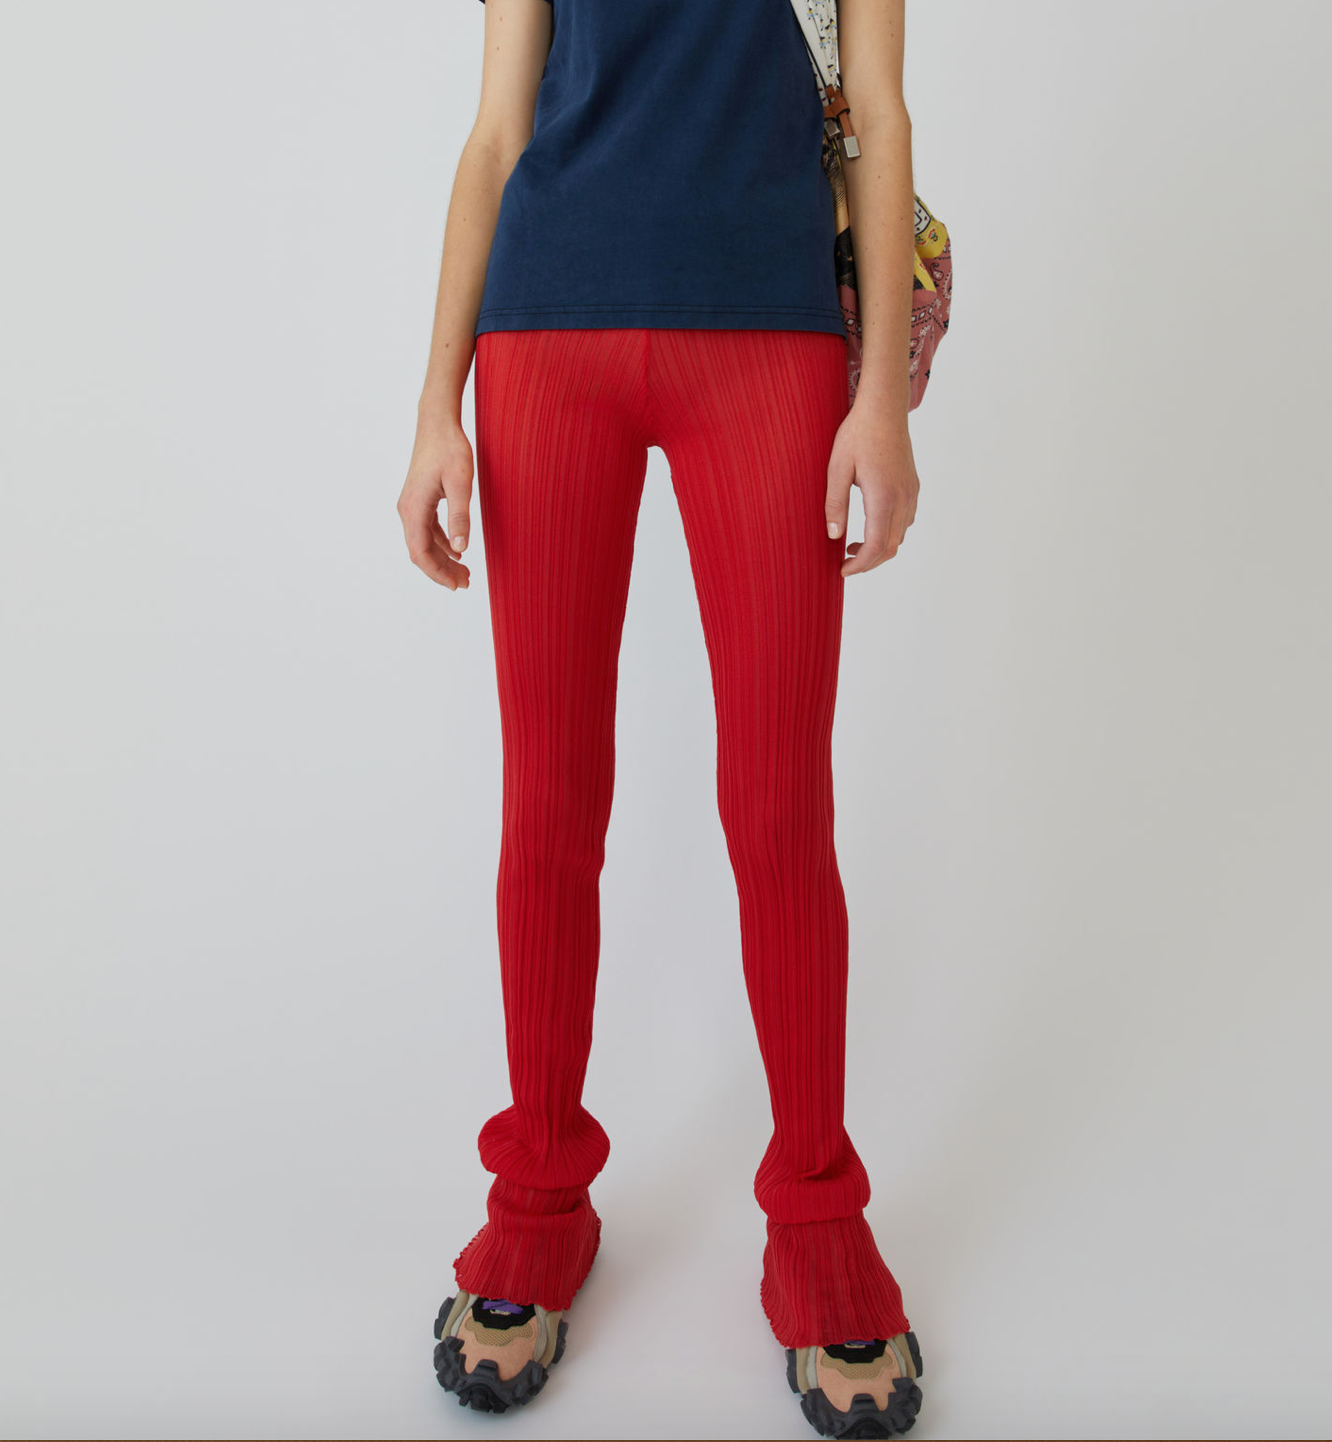 Acne Gerippte Leggings